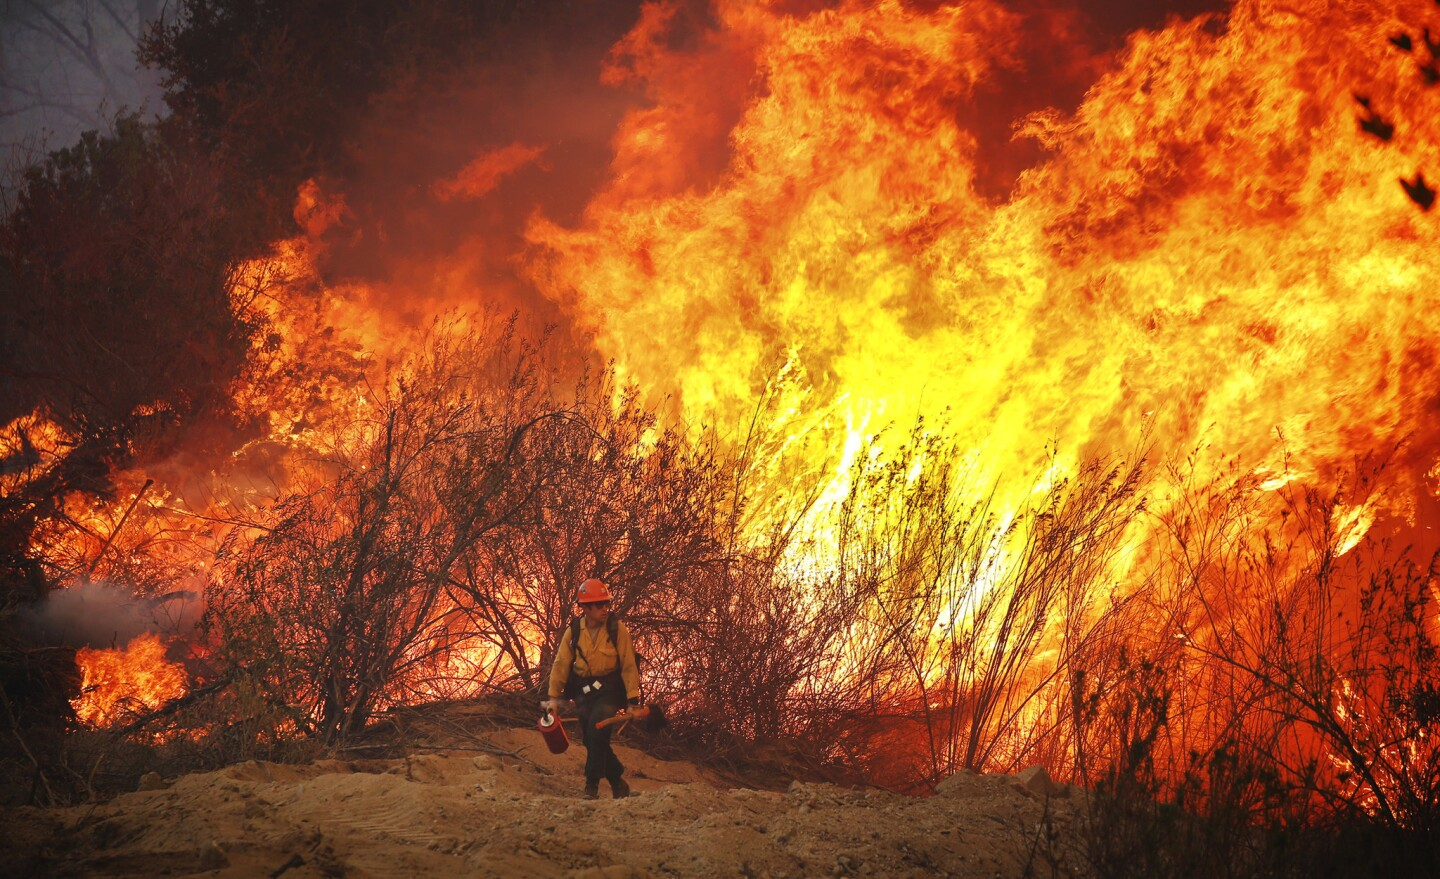 Firefighter Brandon Opliger with the U.S. Forest Service hotshots monitors the Marek Fire as it burns along Little Tujunga Canyon Road above Lake View Terrace.